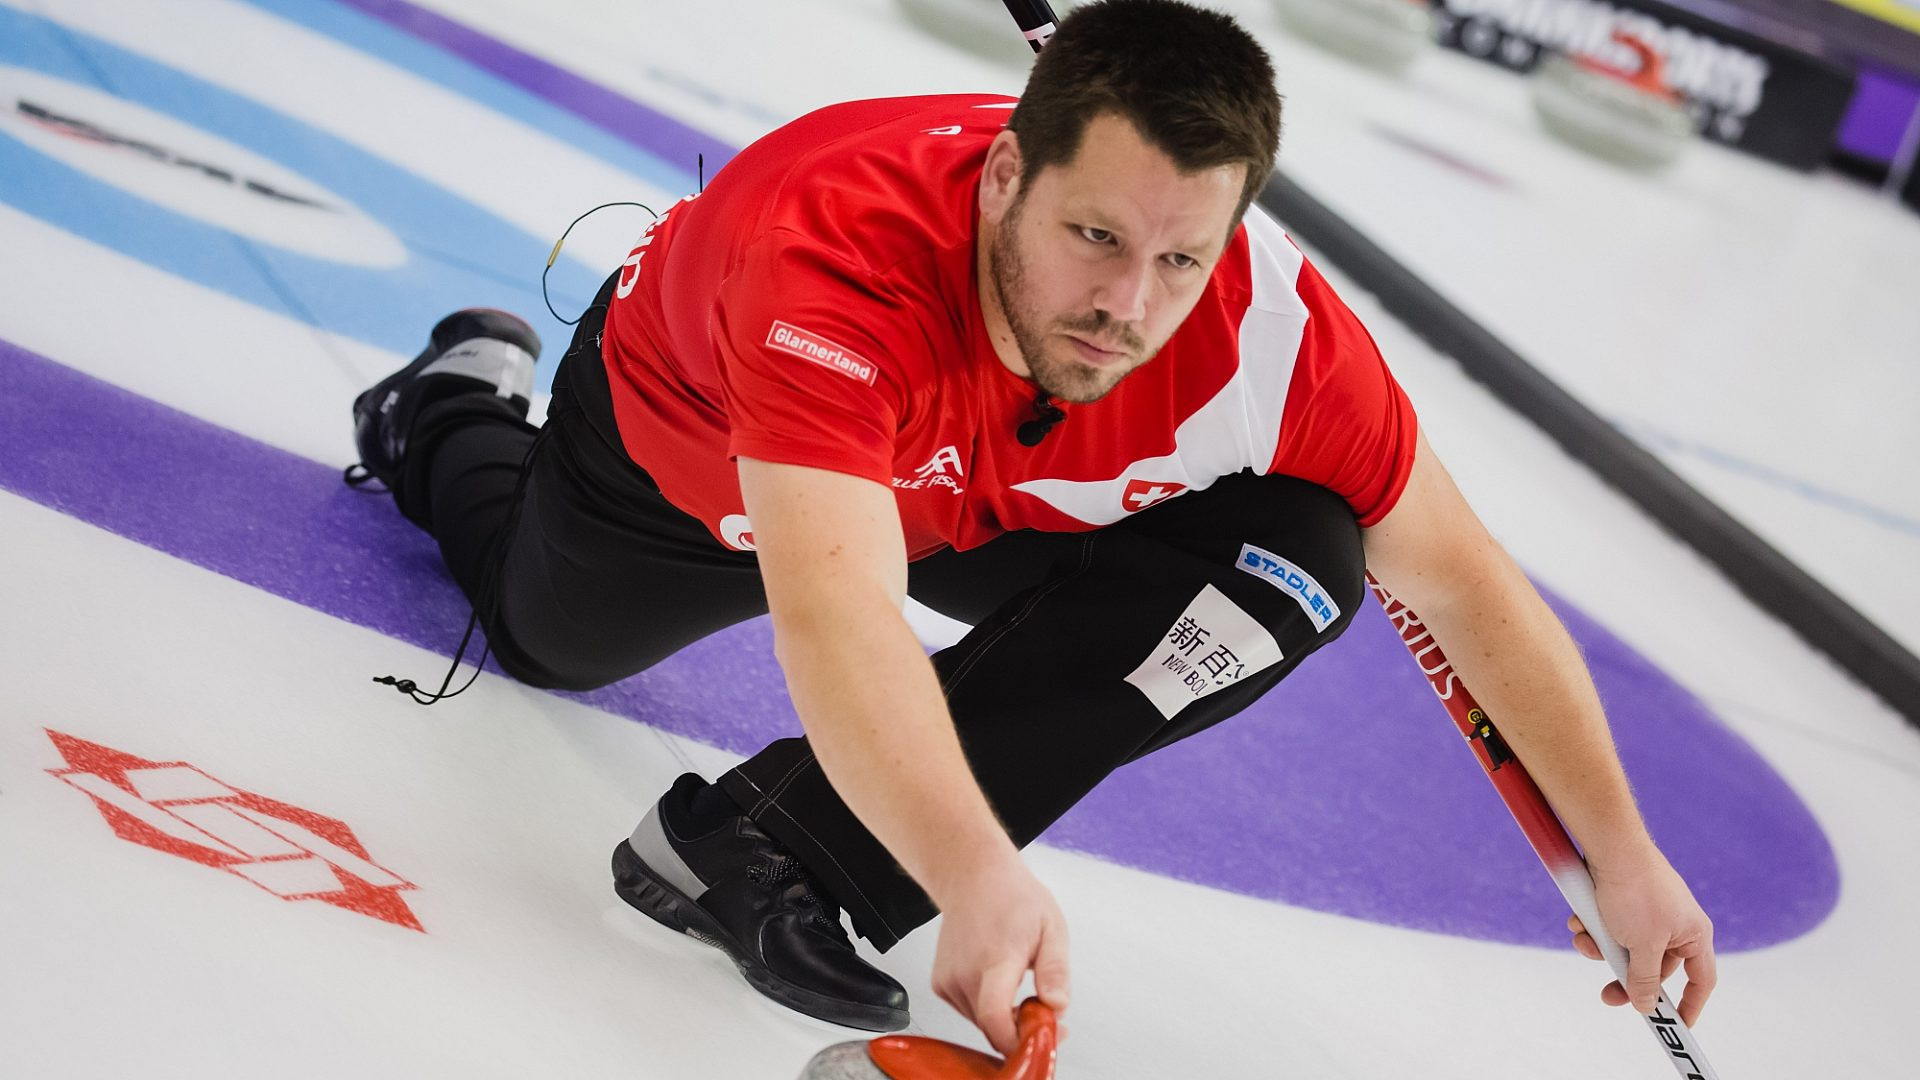 Switzerland's mixed doubles team first to qualify for finals of Curling World Cup